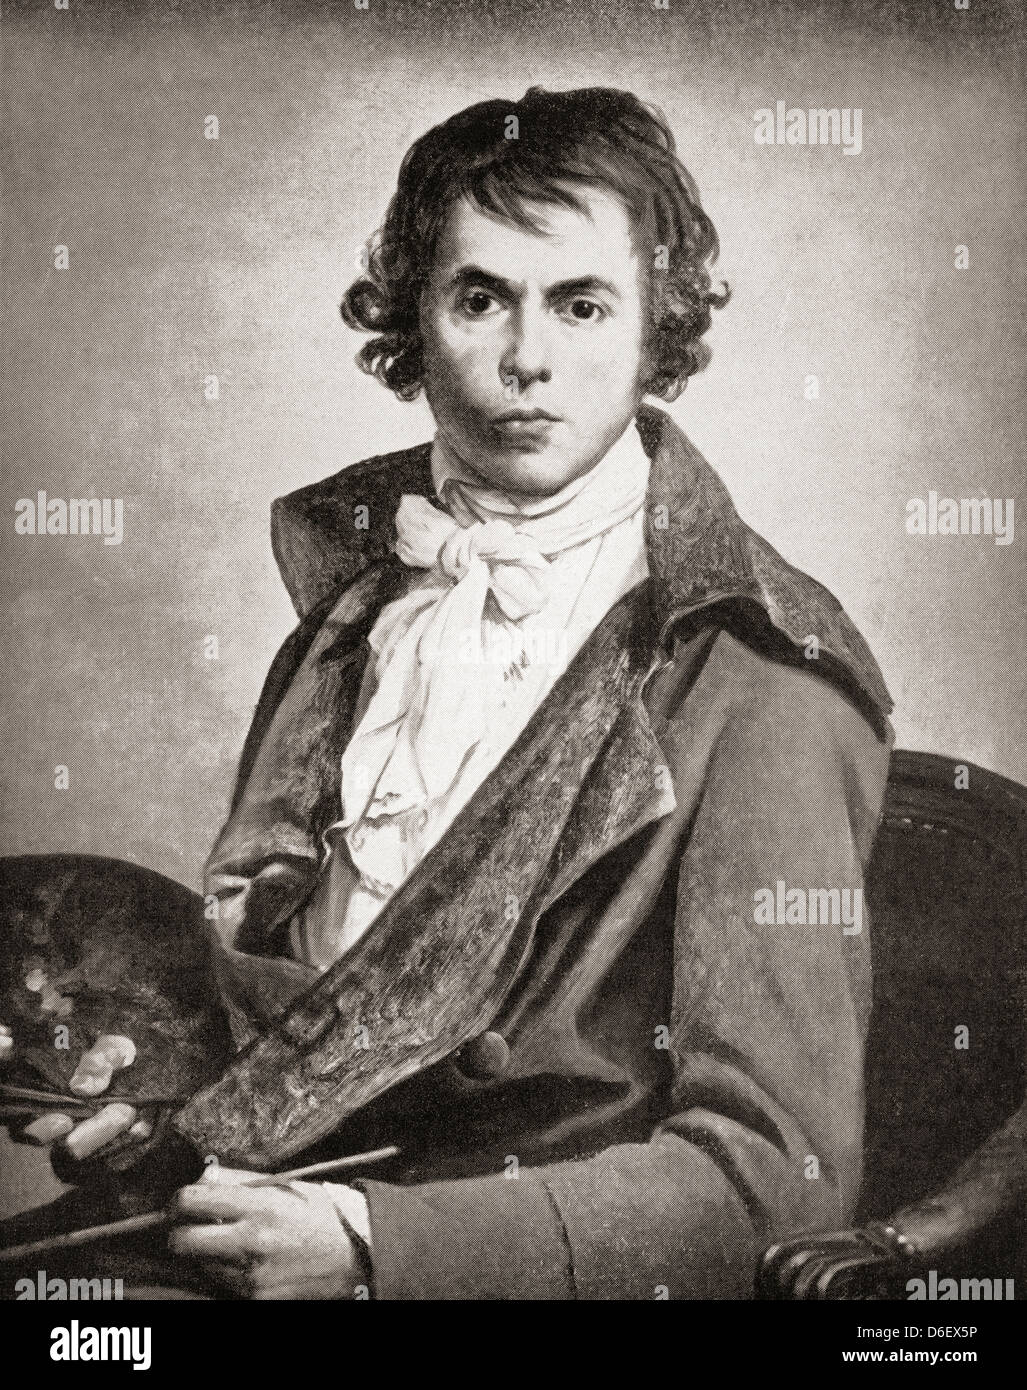 Jacques-Louis David, 1748 –1825. Influential French artist during the French Revolution. - Stock Image